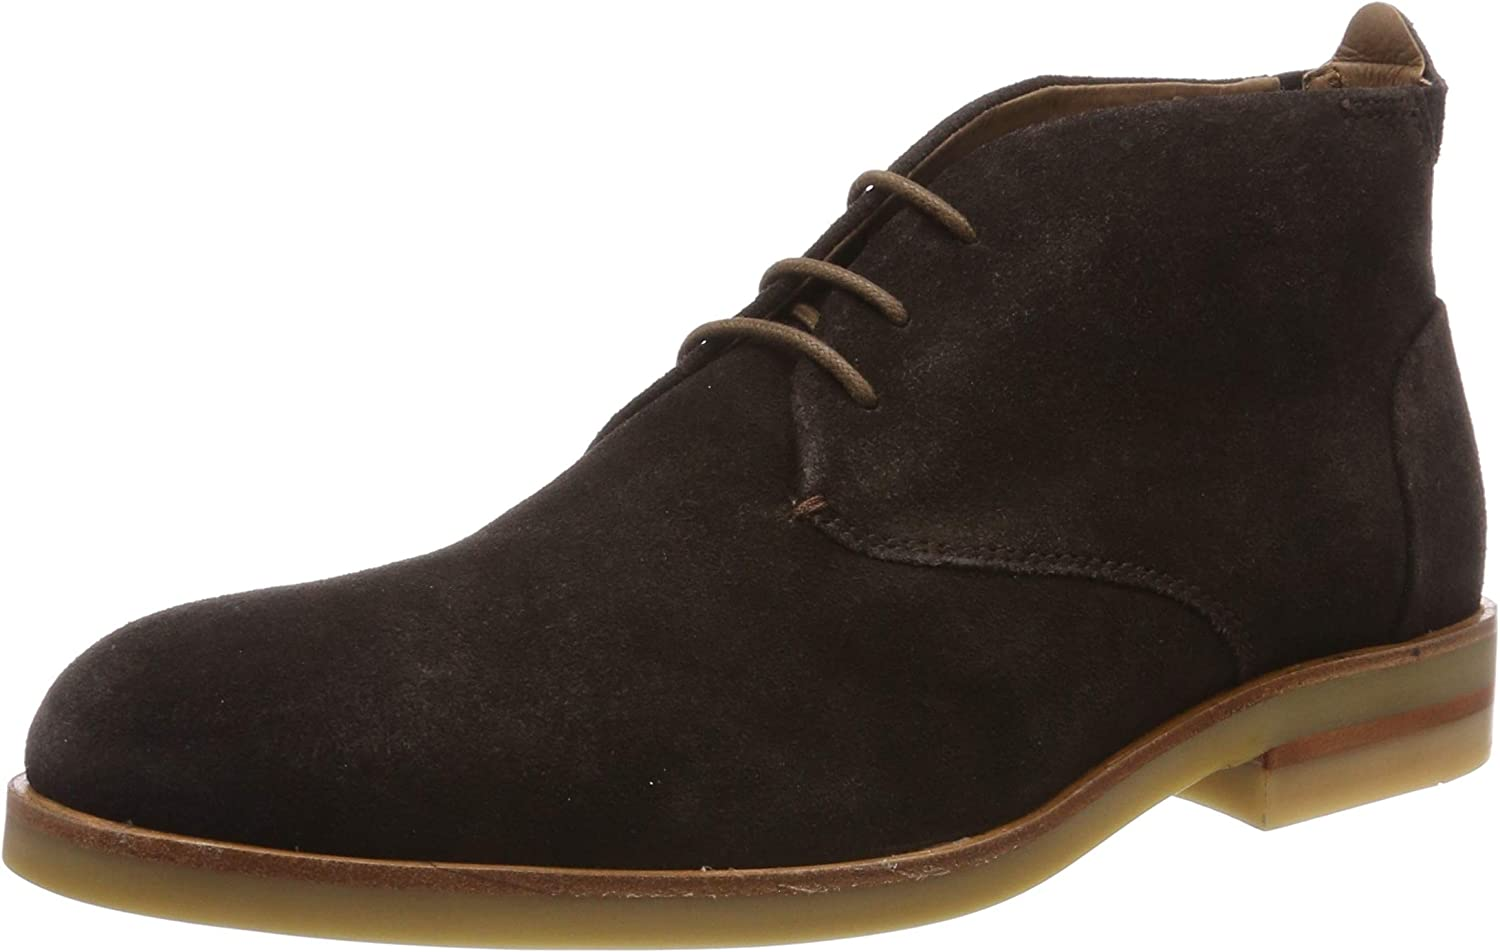 H By Hudson Mens Bedlington Work Formal Office Chukka Cow Suede Boots